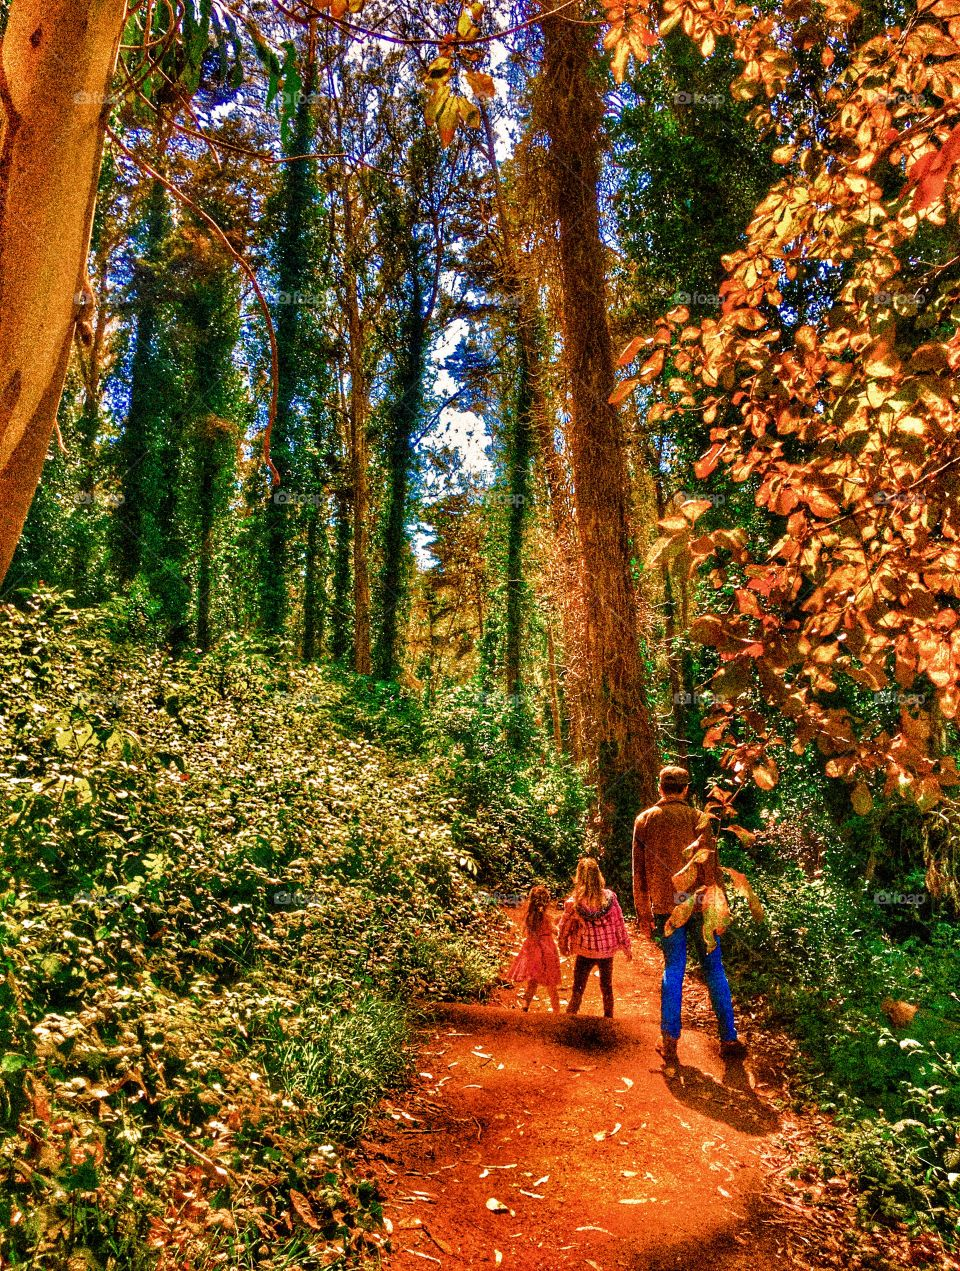 Autumn is here! Interior Greenbelt of San Francisco with father and daughters on path